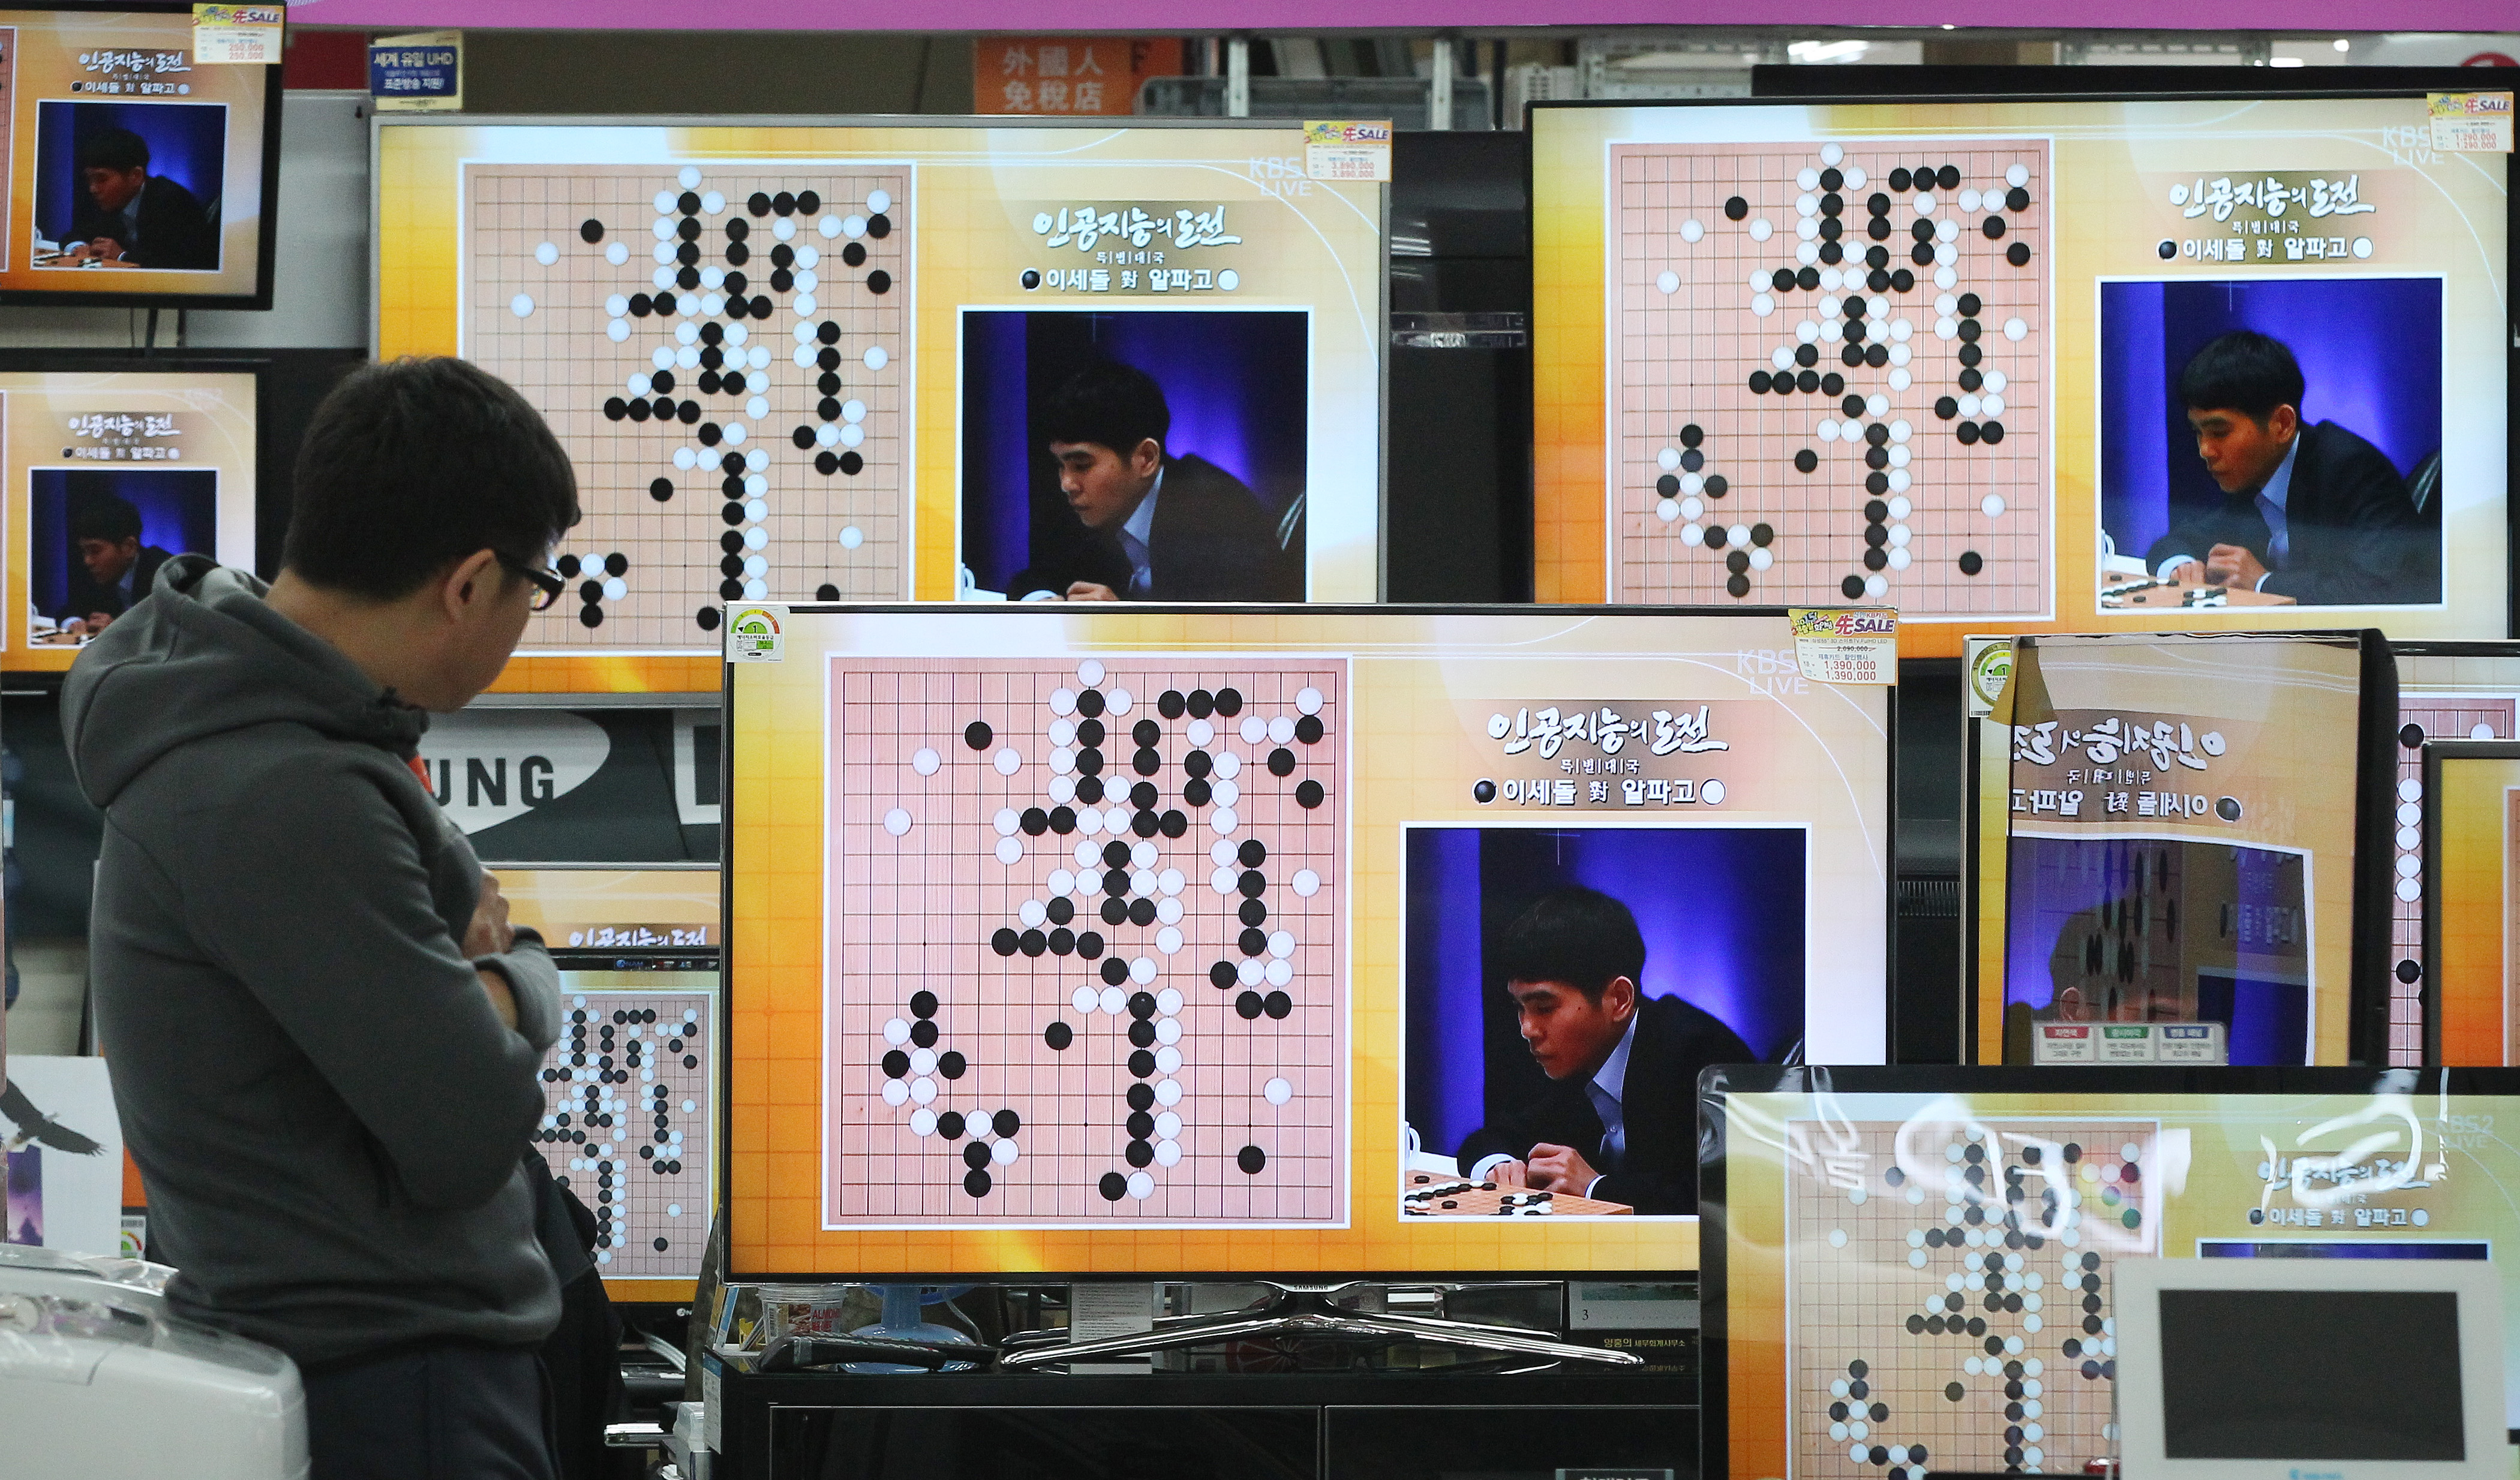 South Korean professional Go player Lee Sedol is seen on the TV screens in a matchup with Google's artificial intelligence program, AlphaGo, at the Yongsan Electronic store in Seoul, South Korea, March 9, 2016.